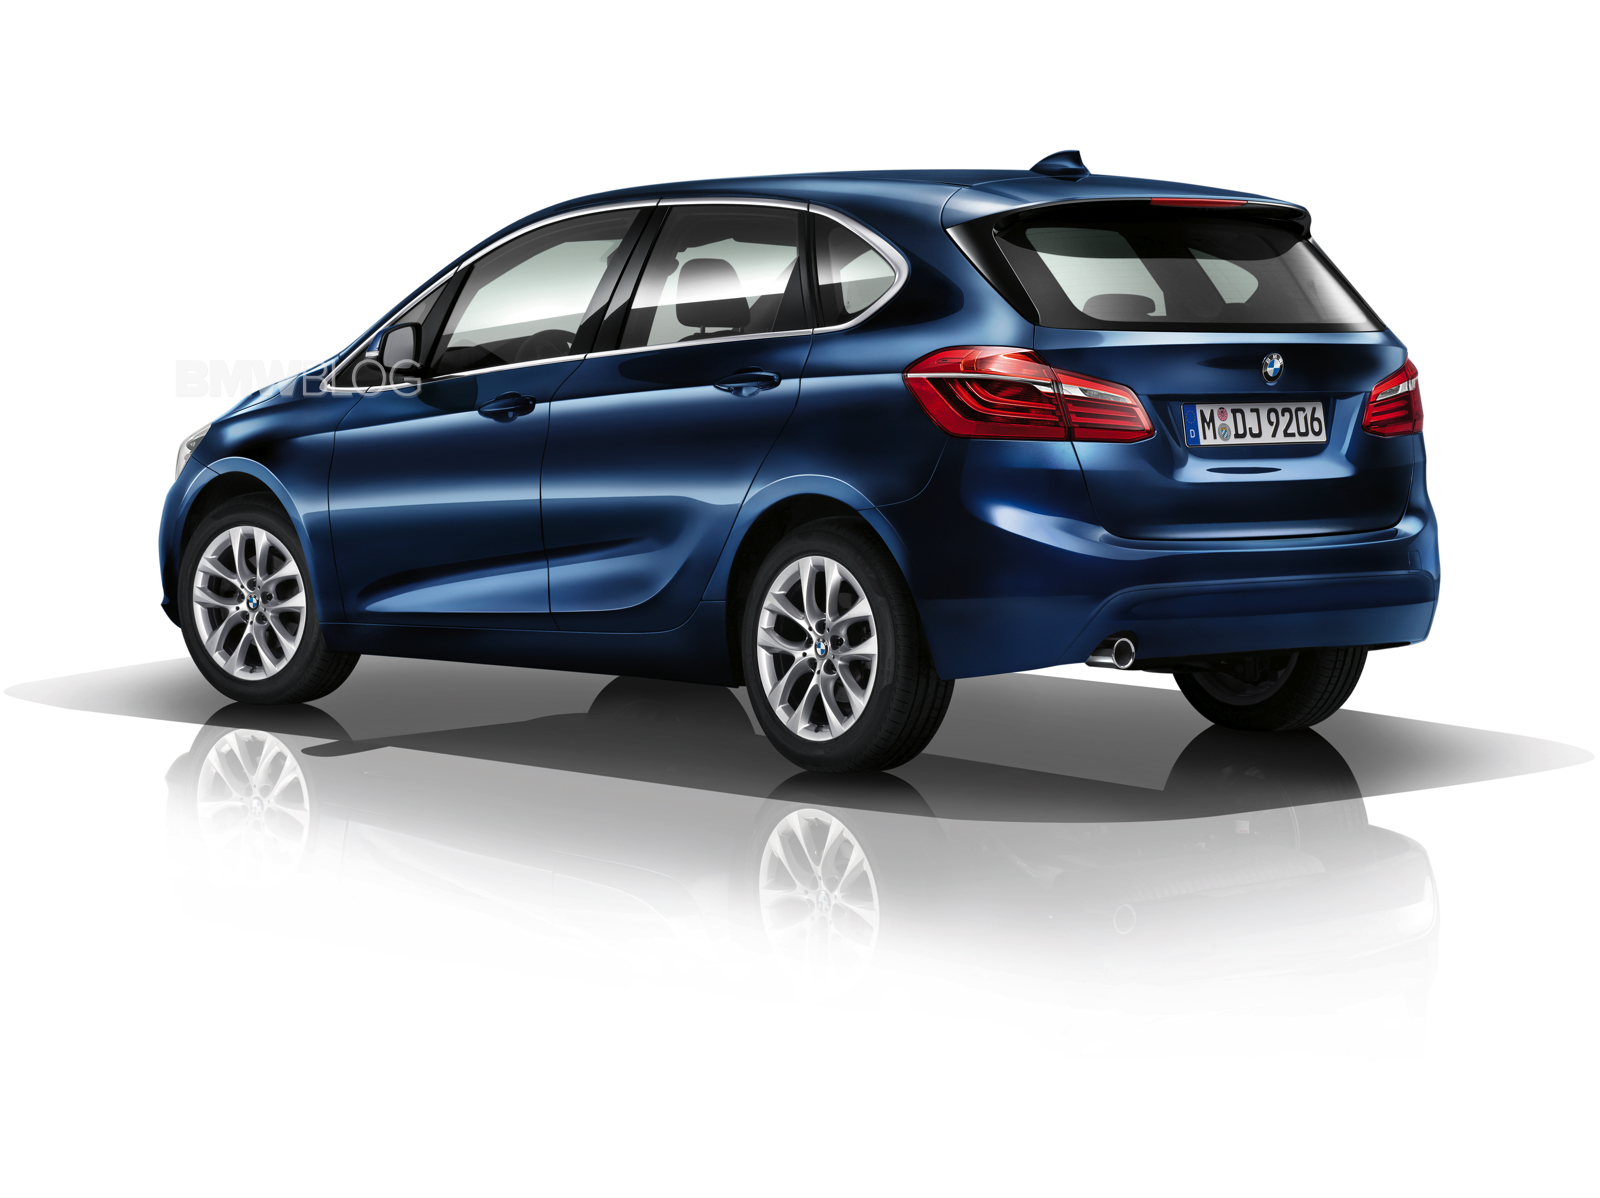 Bmw 2 Series Active Tourer With M Sport Package Photo Gallery